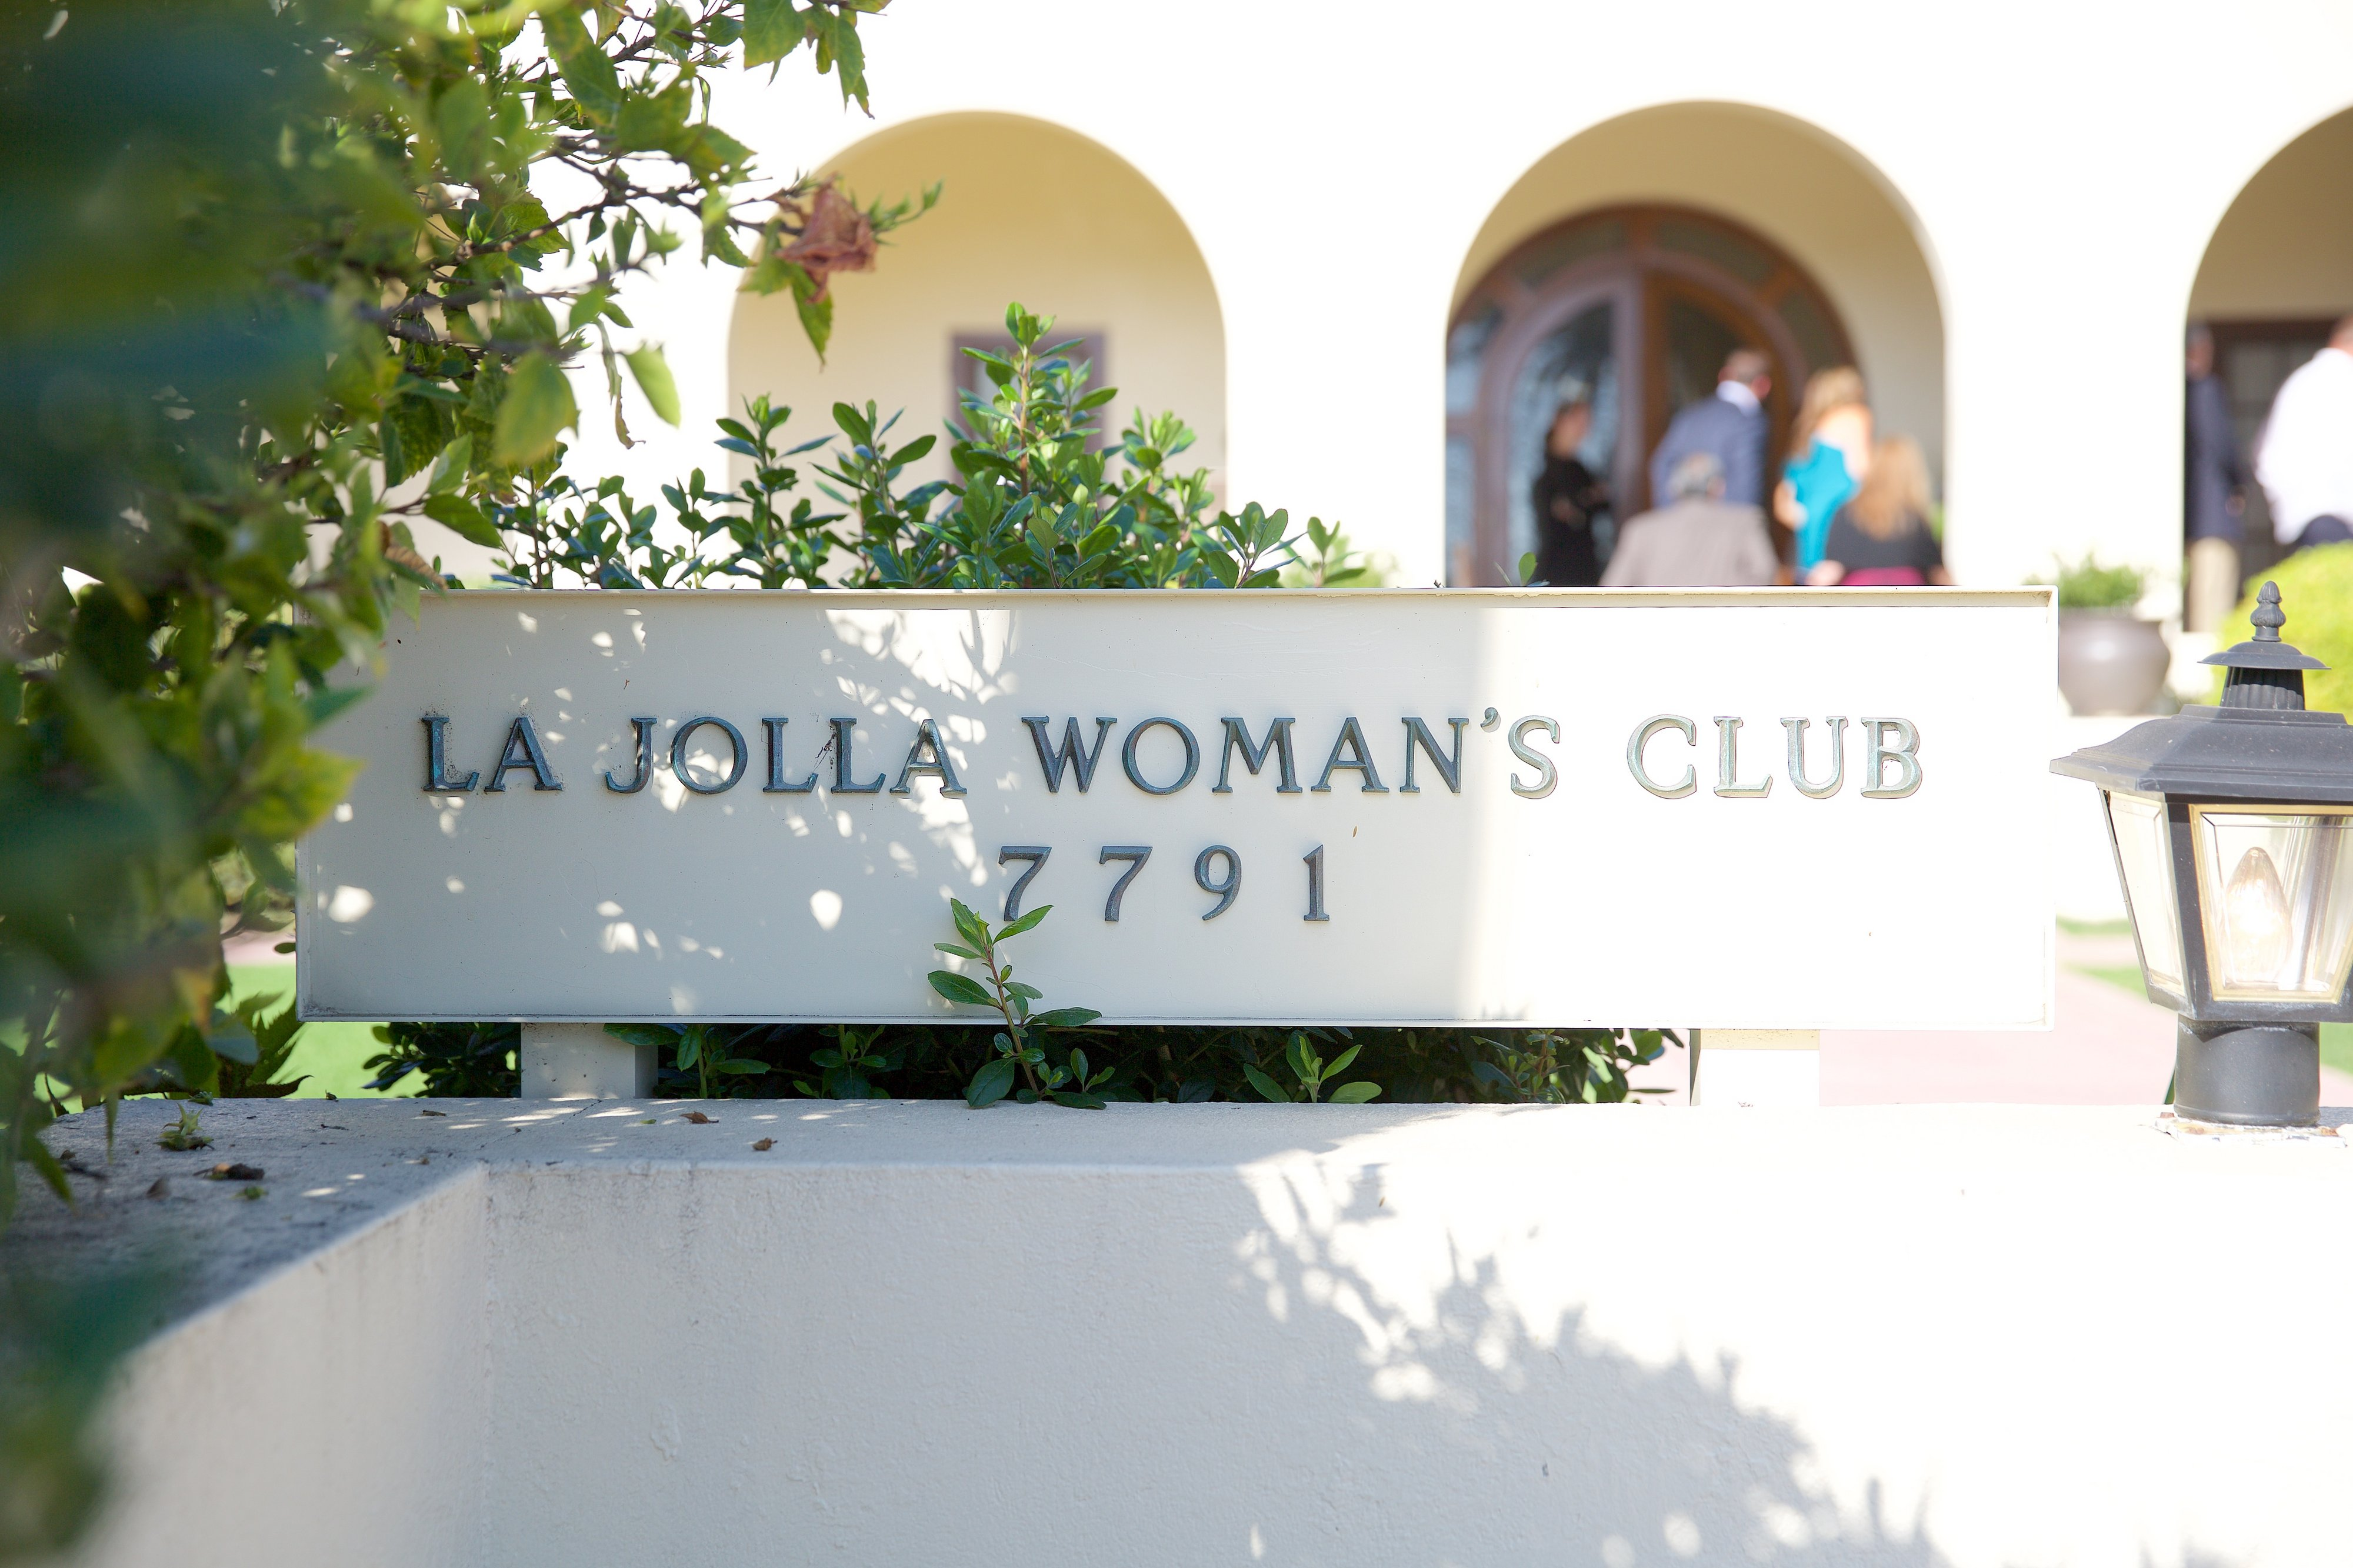 la jolla christian girl personals Welcome to the la jolla girls basketball team wall the most current information will appear at the top of the wall dating back to prior seasons utilize the left navigation tools to find.